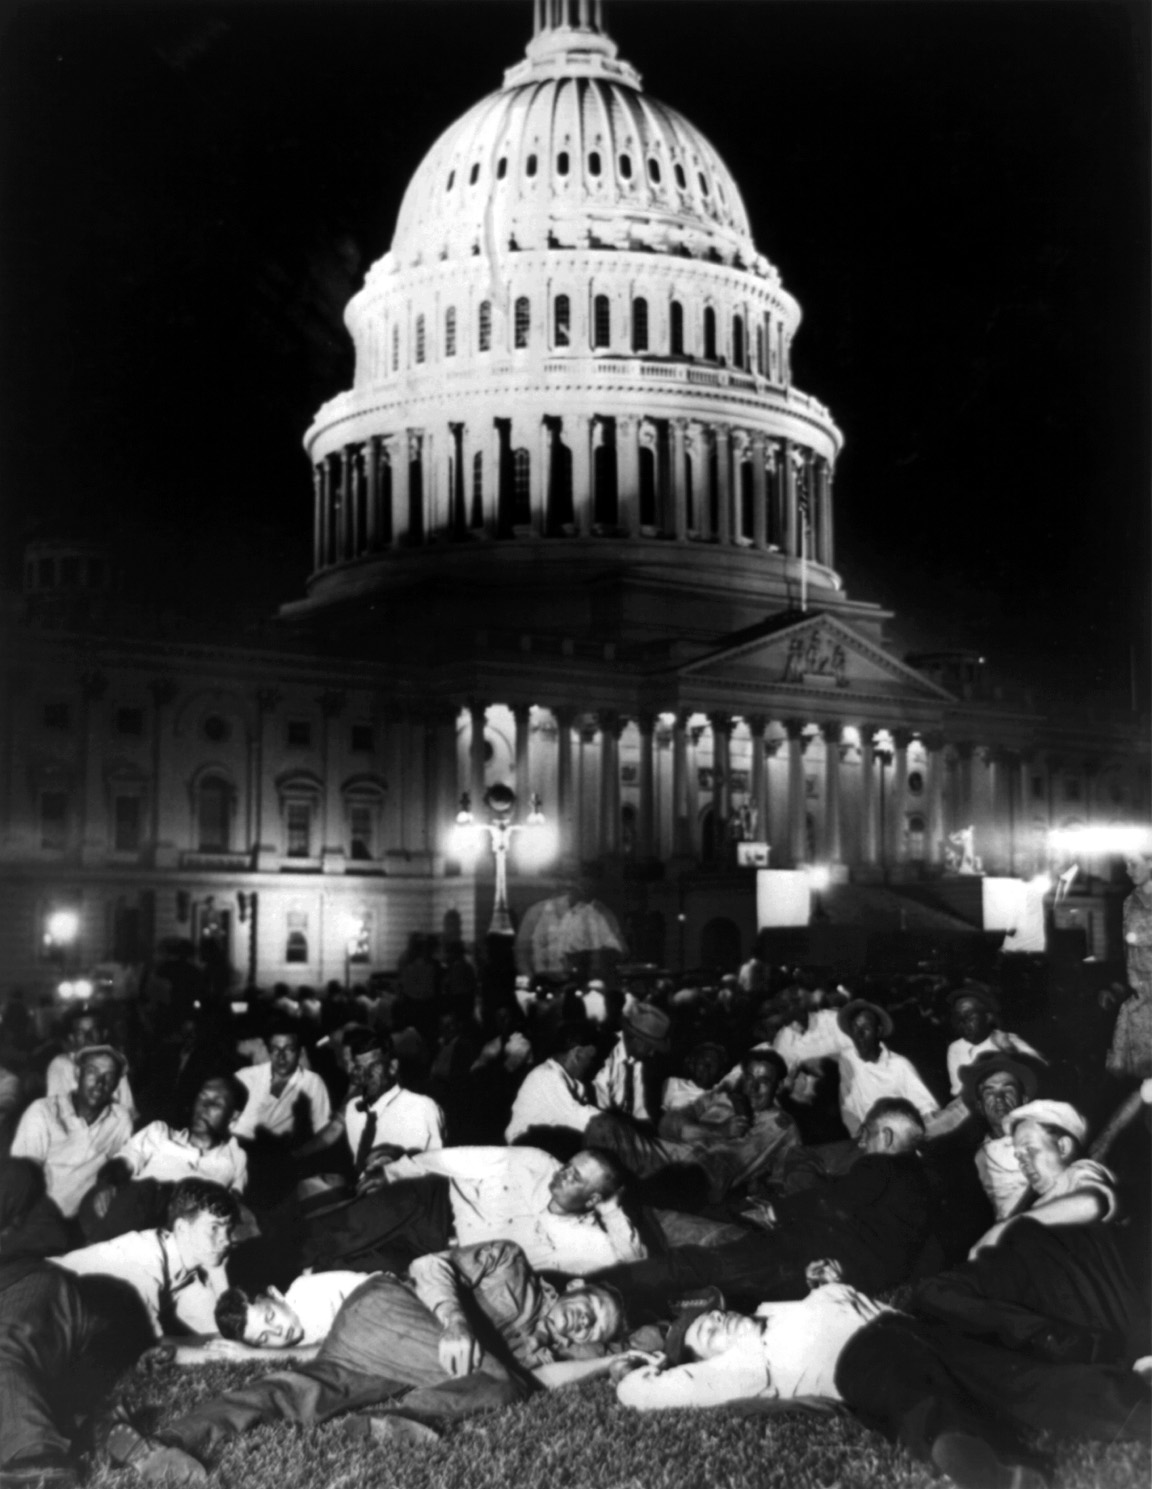 Bonus March @ US Capitol, 1932